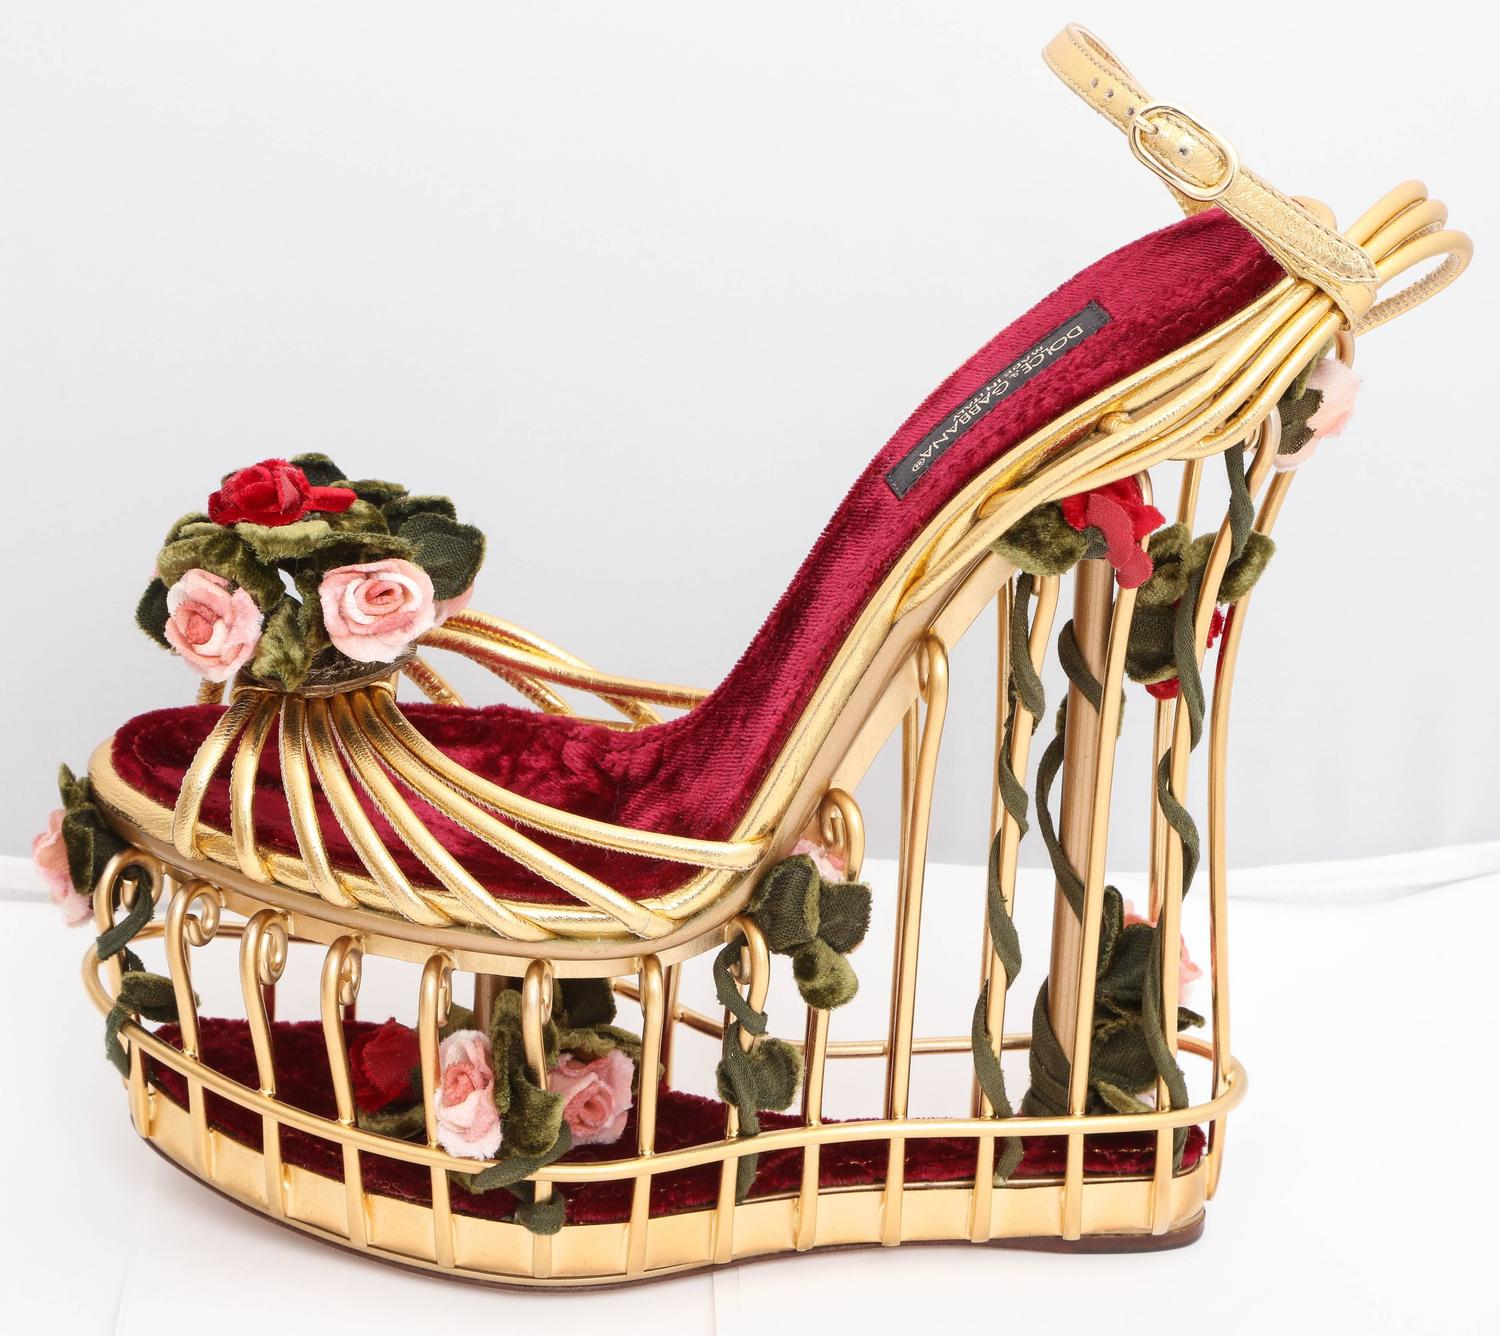 59613ecb68f7 Very rare Dolce and Gabbana Runway Cage Heel Shoes Piece of Art! at 1stdibs